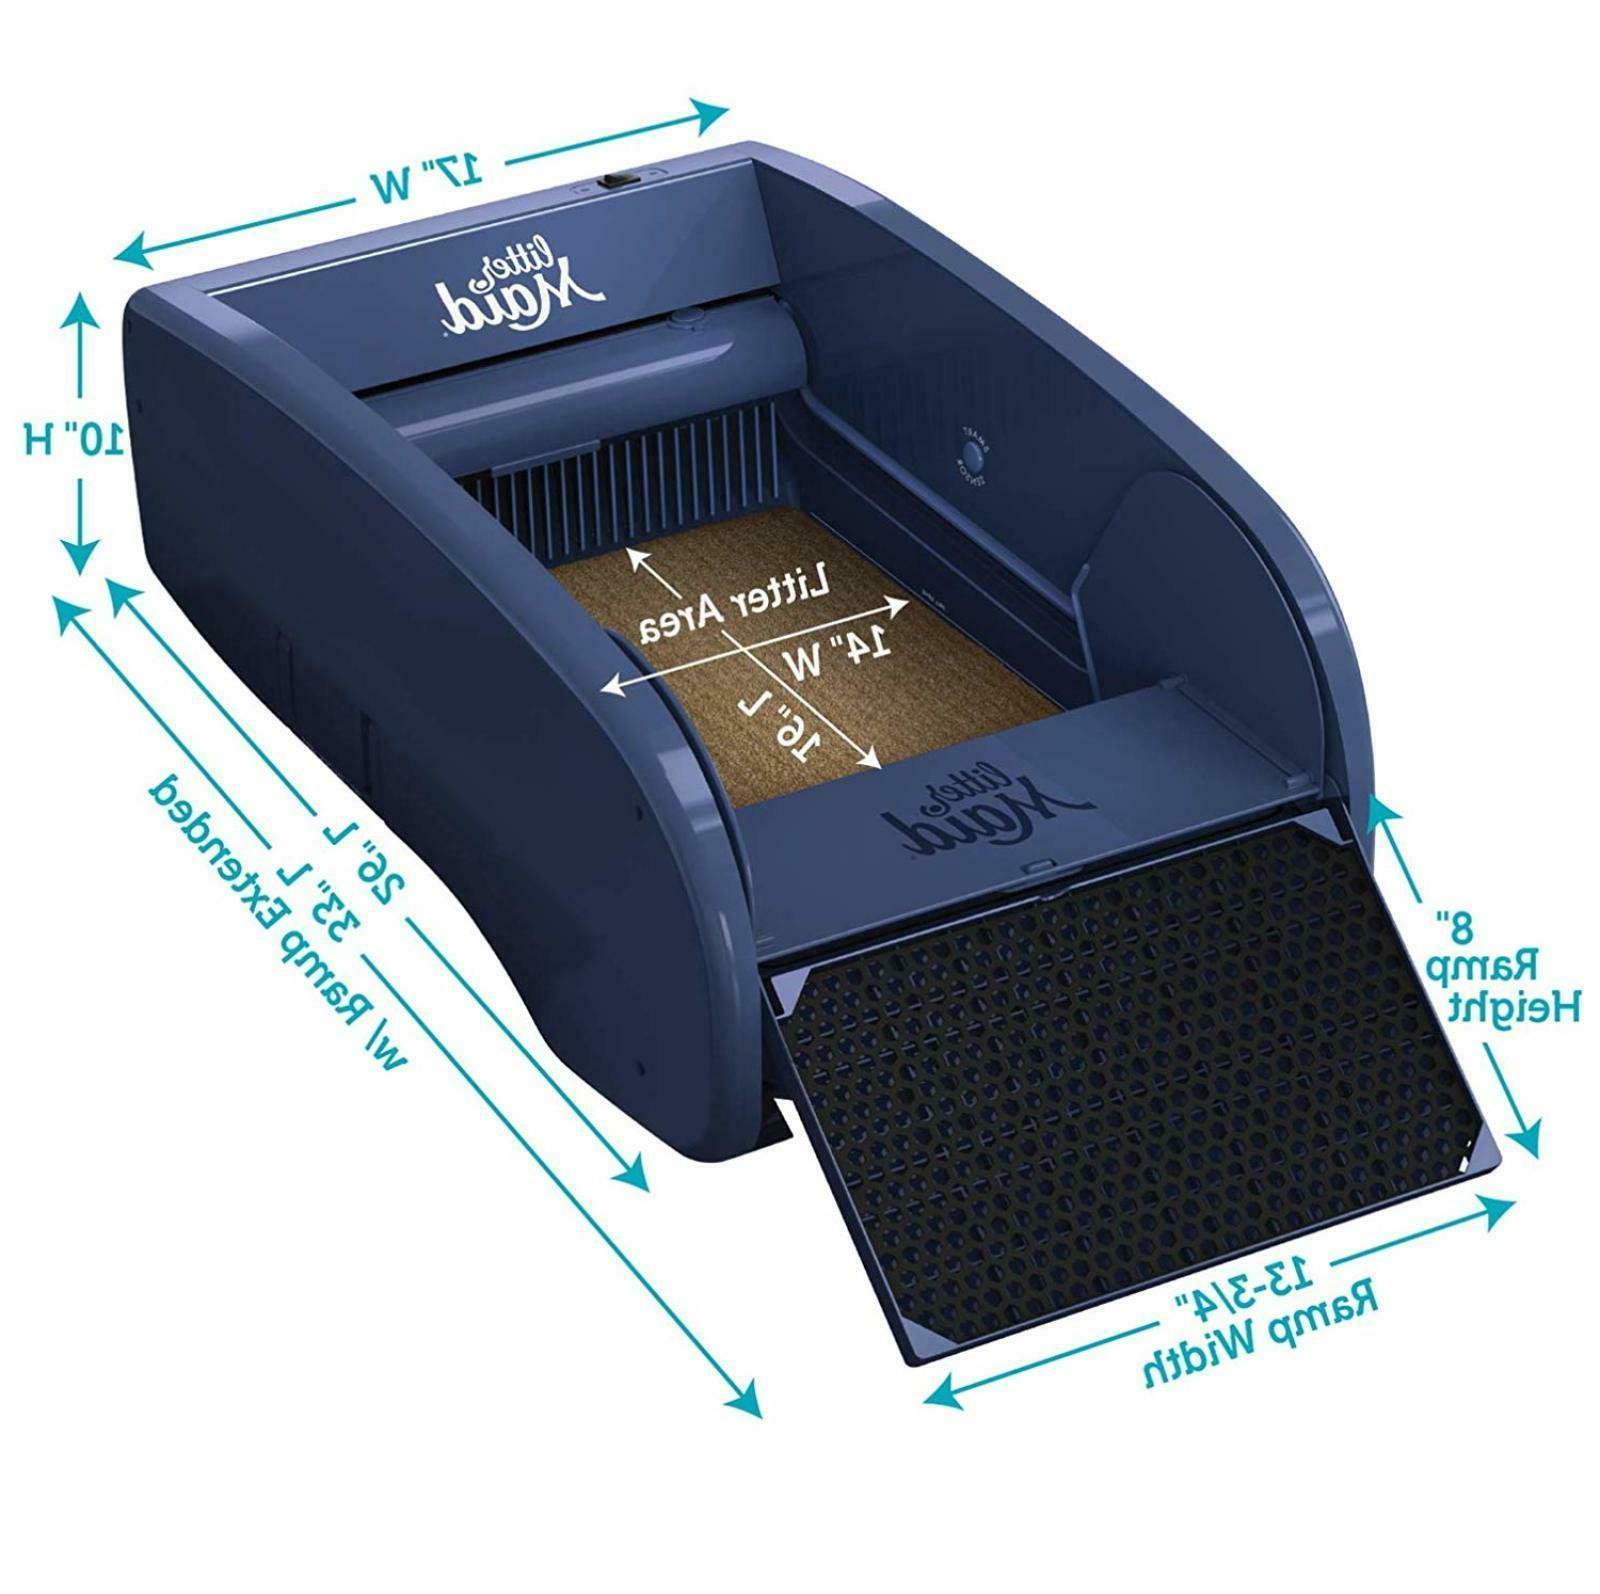 LitterMaid Box Self-Cleaning with Ramp V